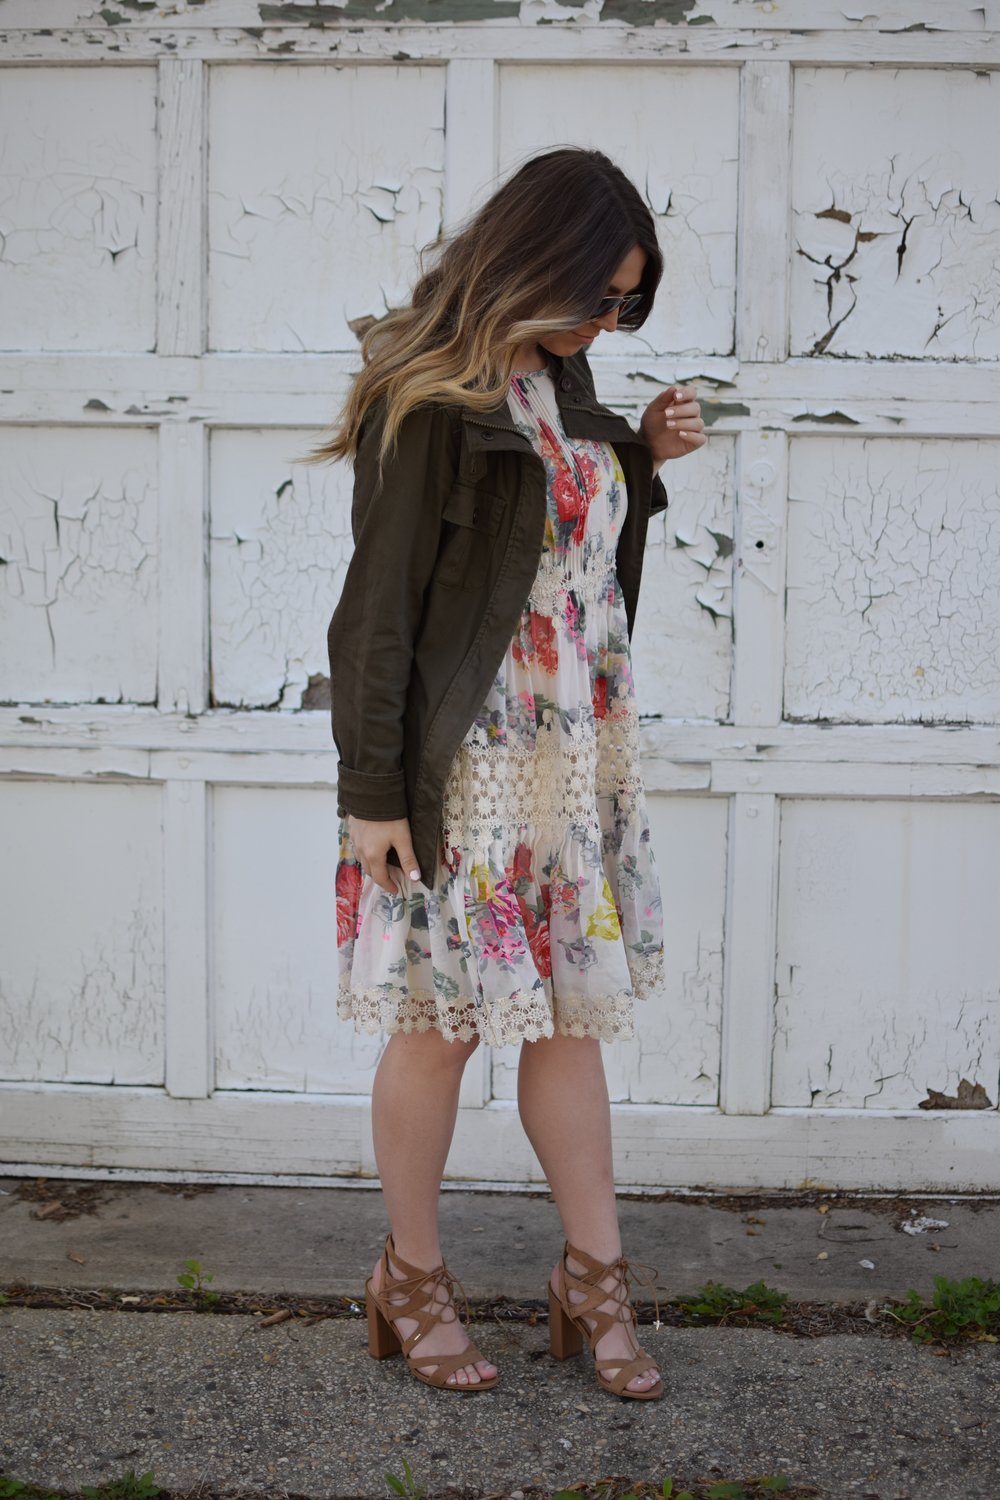 anthropology floral & lace dress / spring & summer outfit idea / how to style a utility jacket / lace up sandals